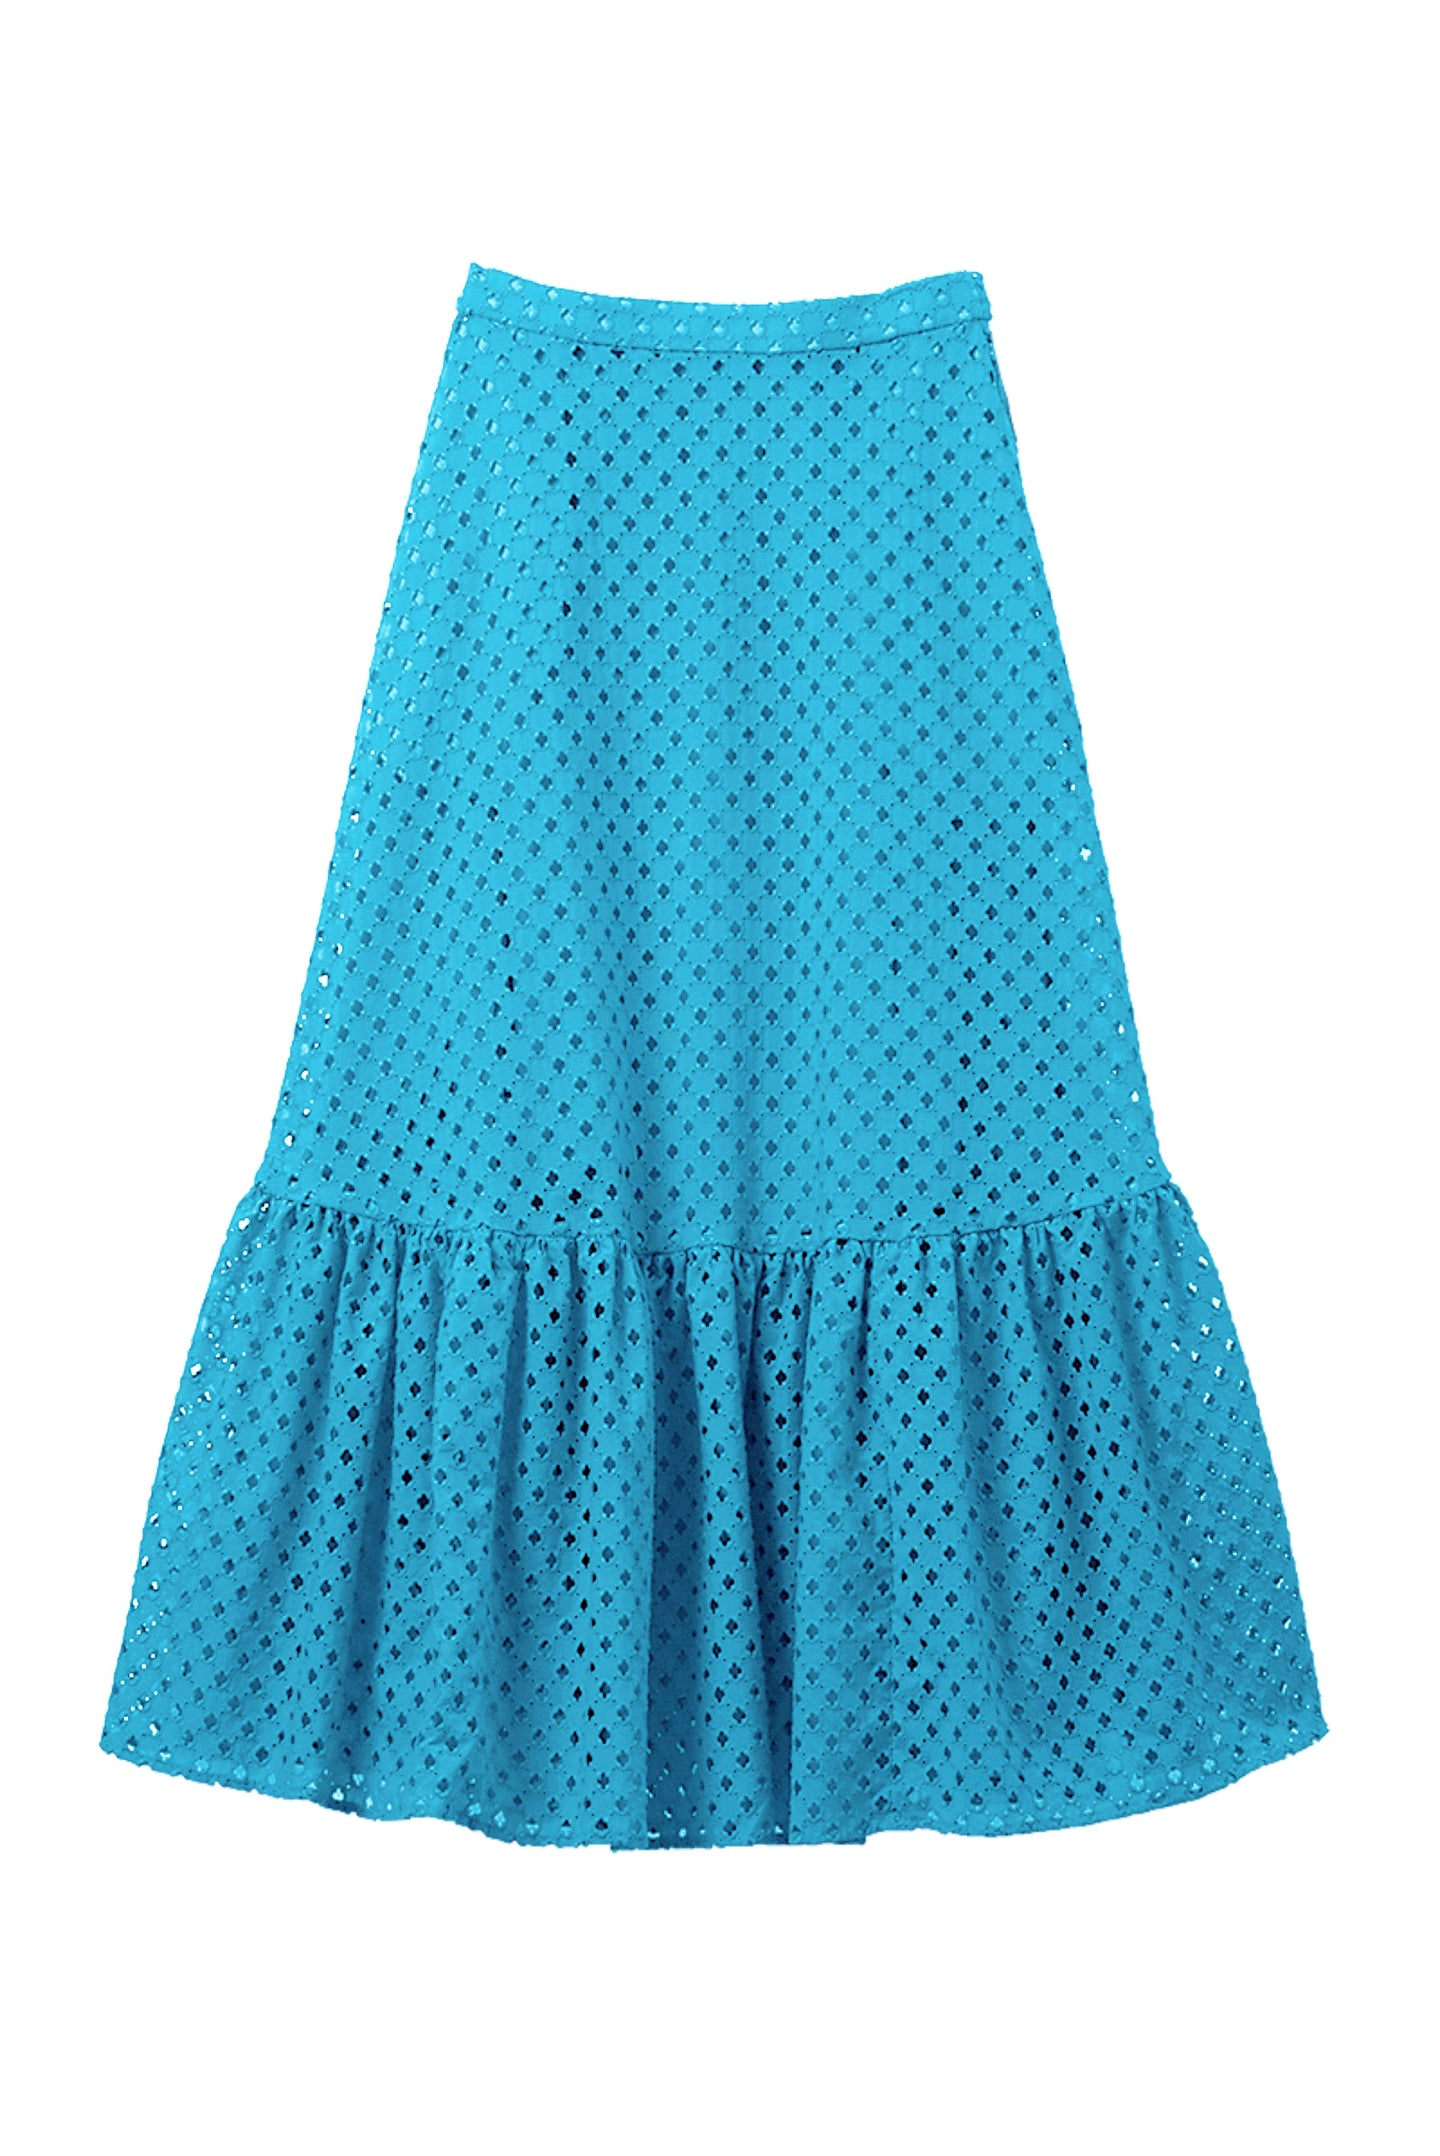 Cotton Lace Tiered Skirt | Turquoise Blue